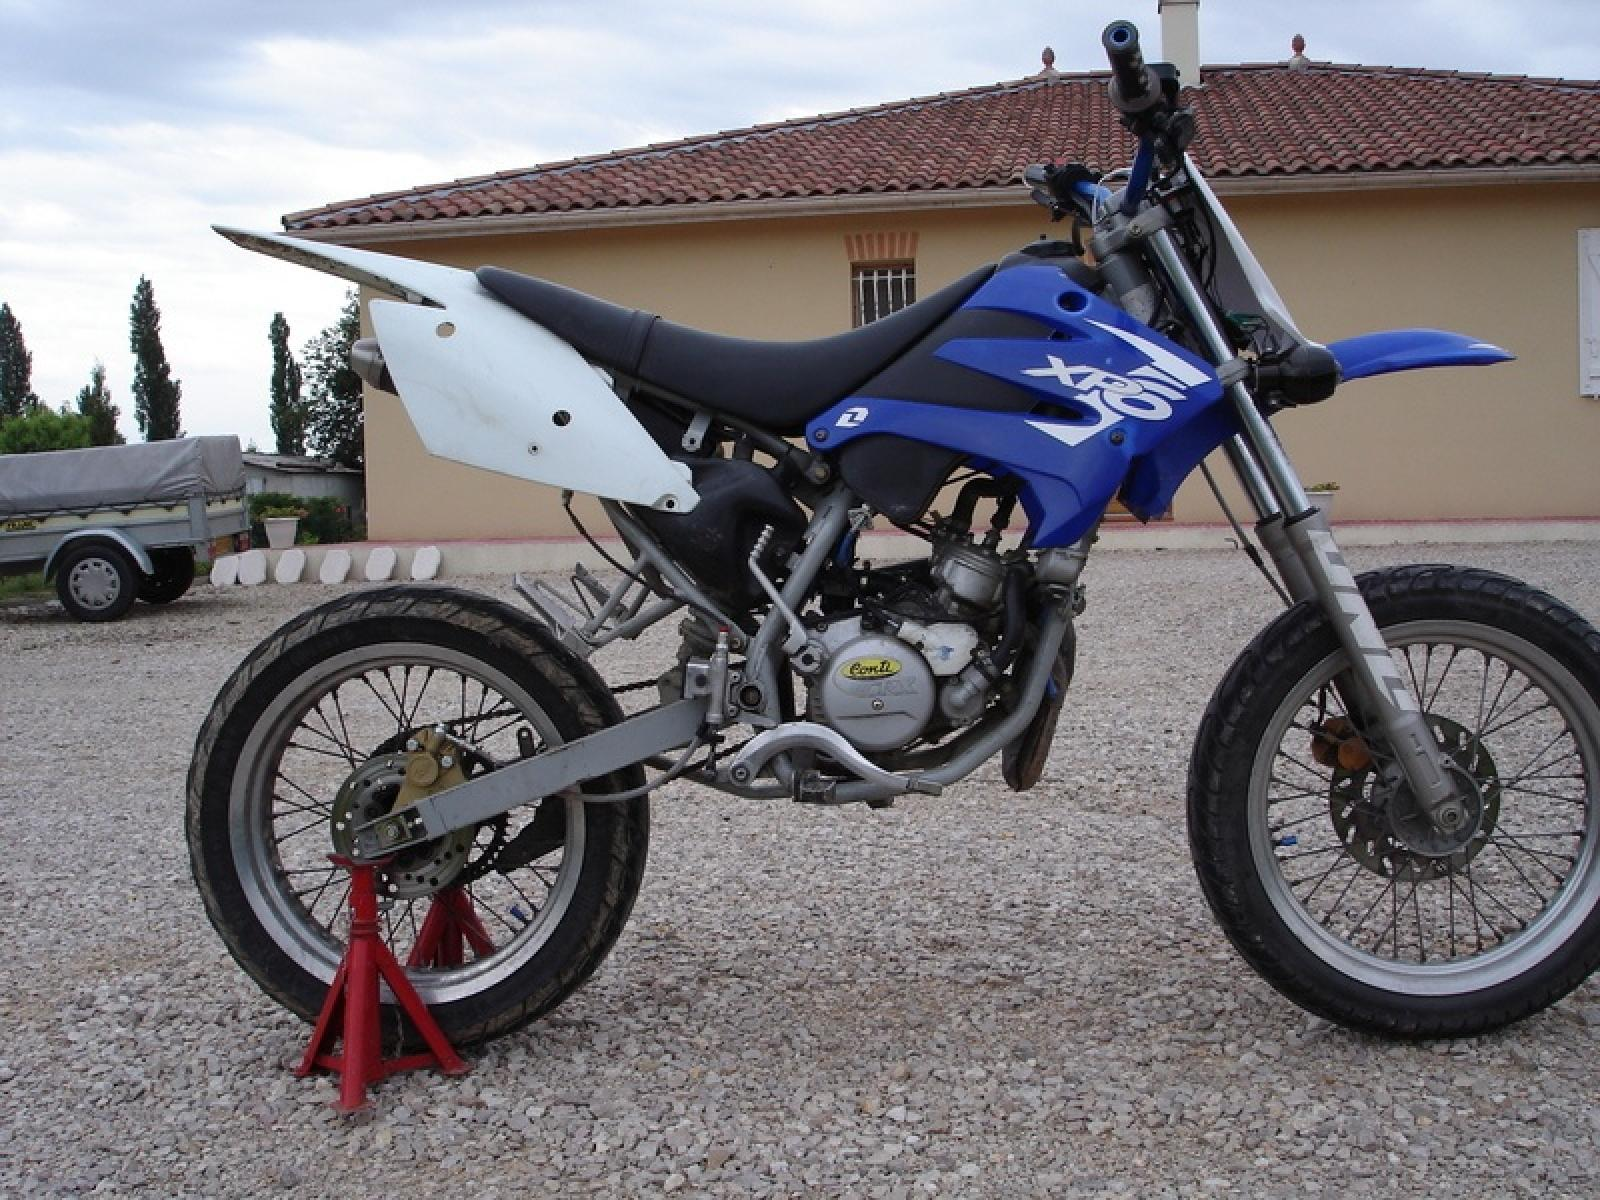 Peugeot XP6 50 Supermotard 2005 images #119020